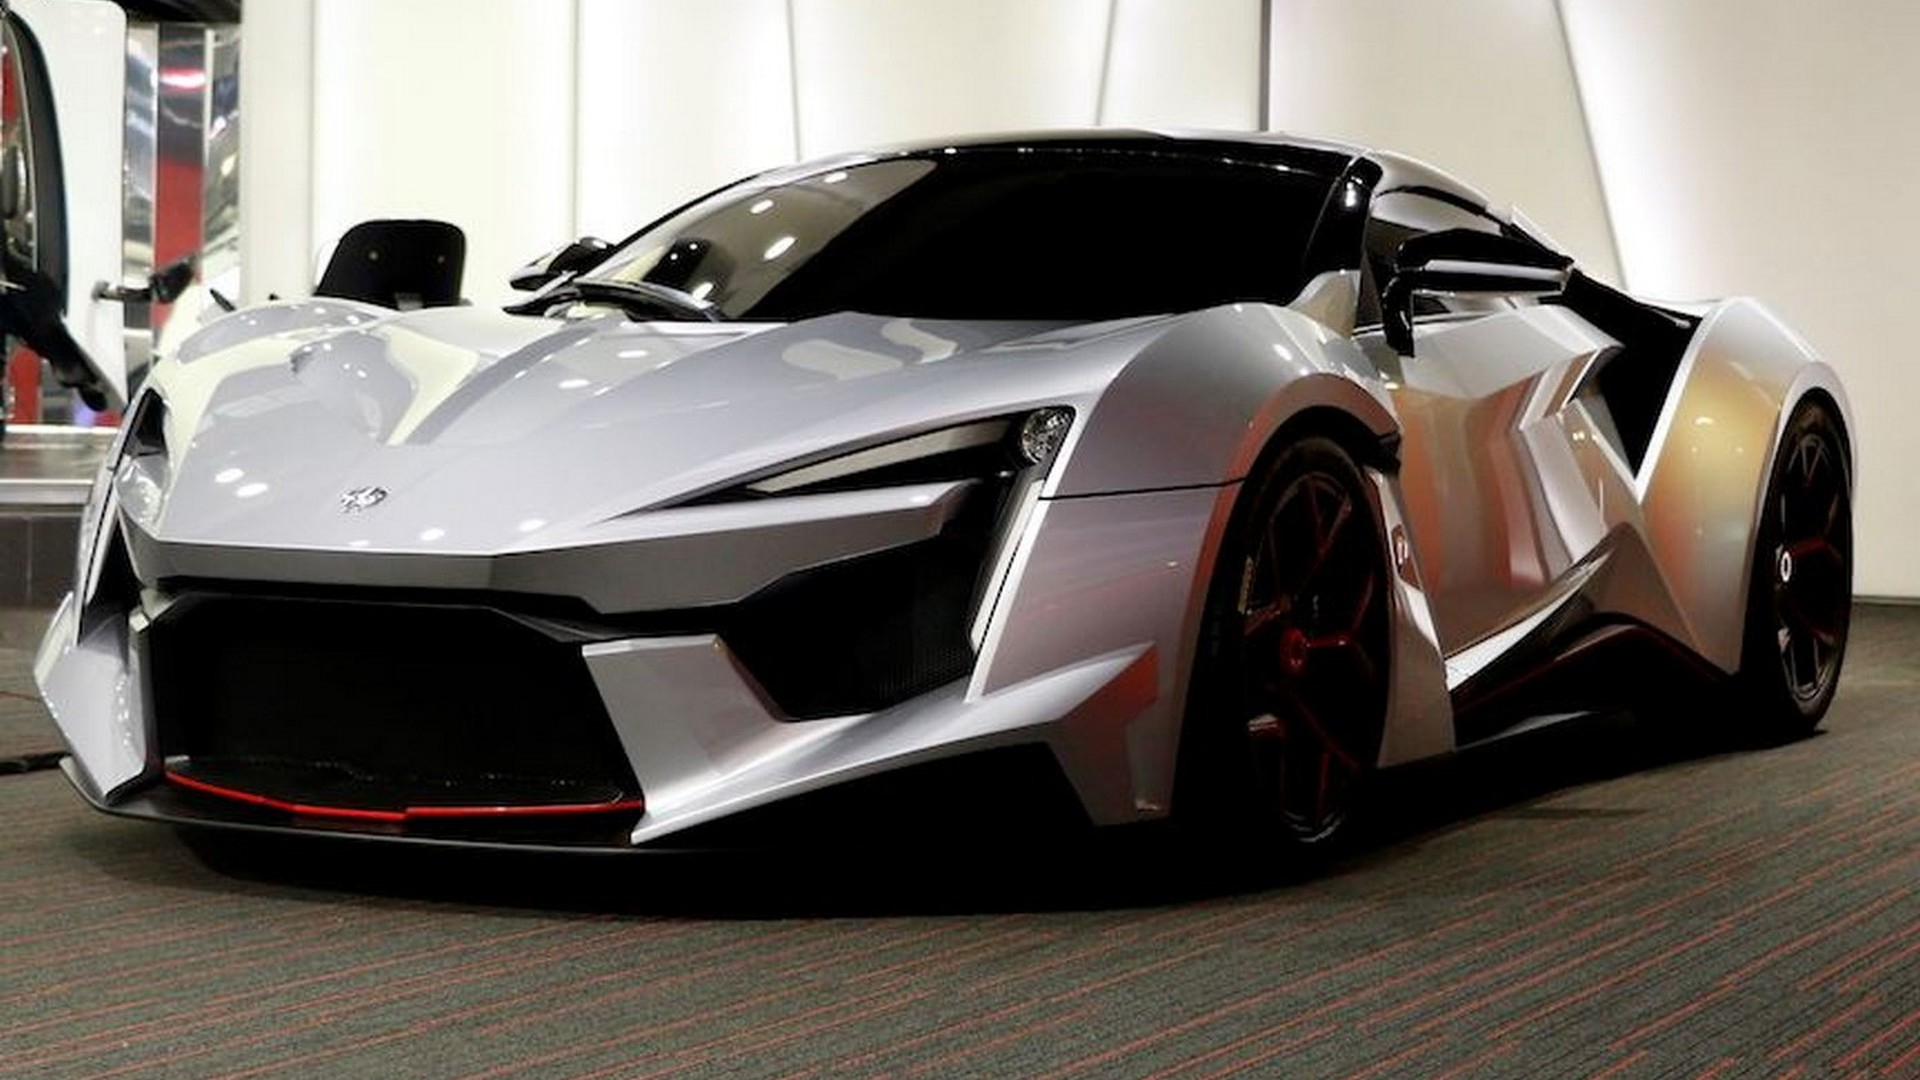 A closer look at the Fenyr SuperSport in live pics